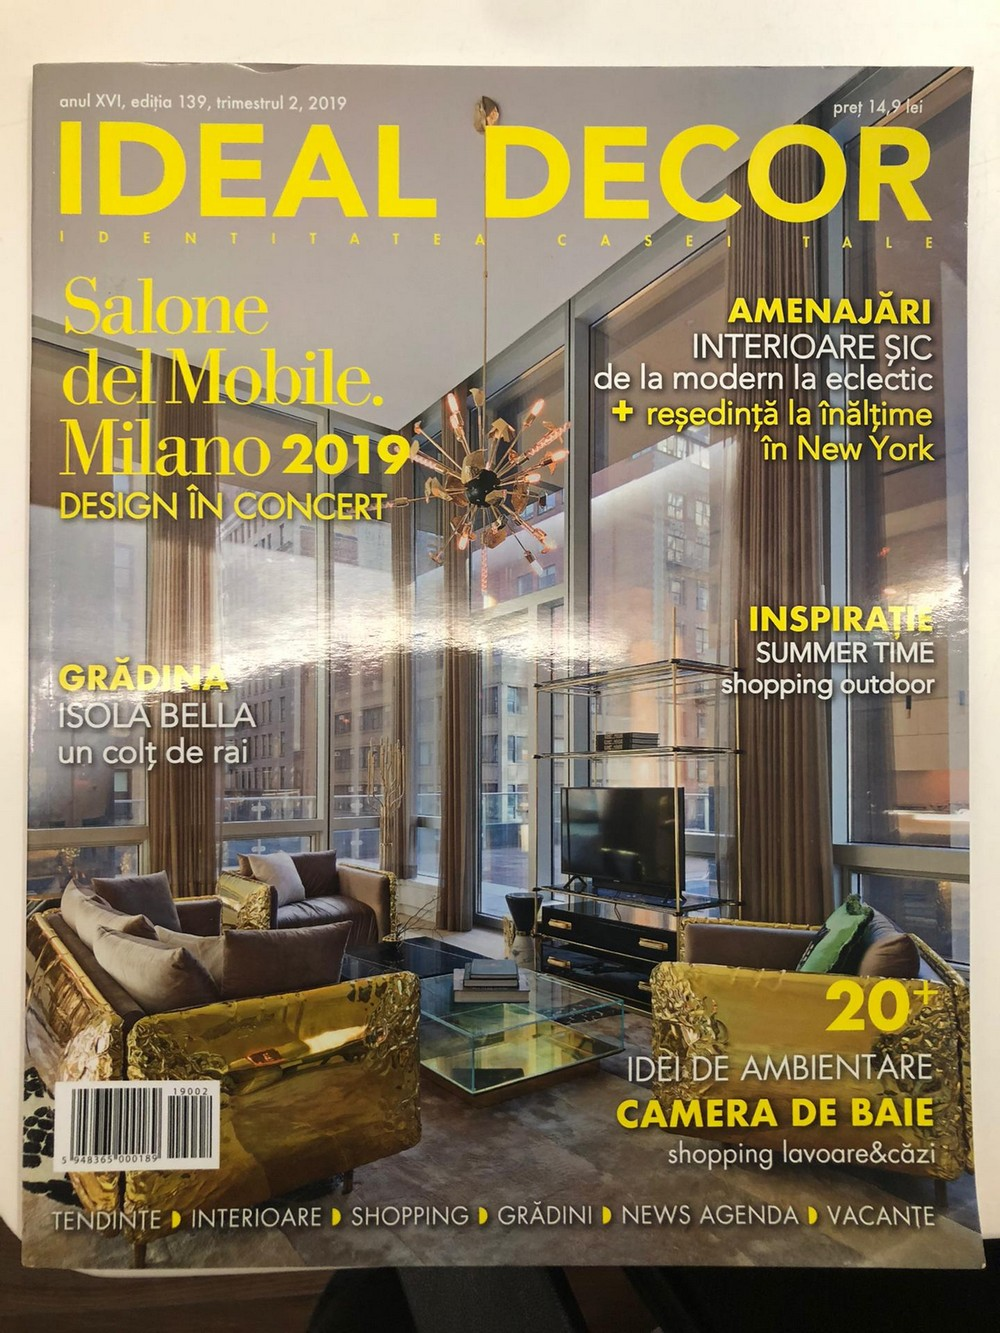 One Of Tyler Whitman's Luxury Mansions Is The Cover Of Ideal Decor luxury mansion One Of Tyler Whitman's Luxury Mansions Is The Cover Of Ideal Decor One Of Tyler Whitmans Luxury Mansions Is The Cover Of Ideal Decor